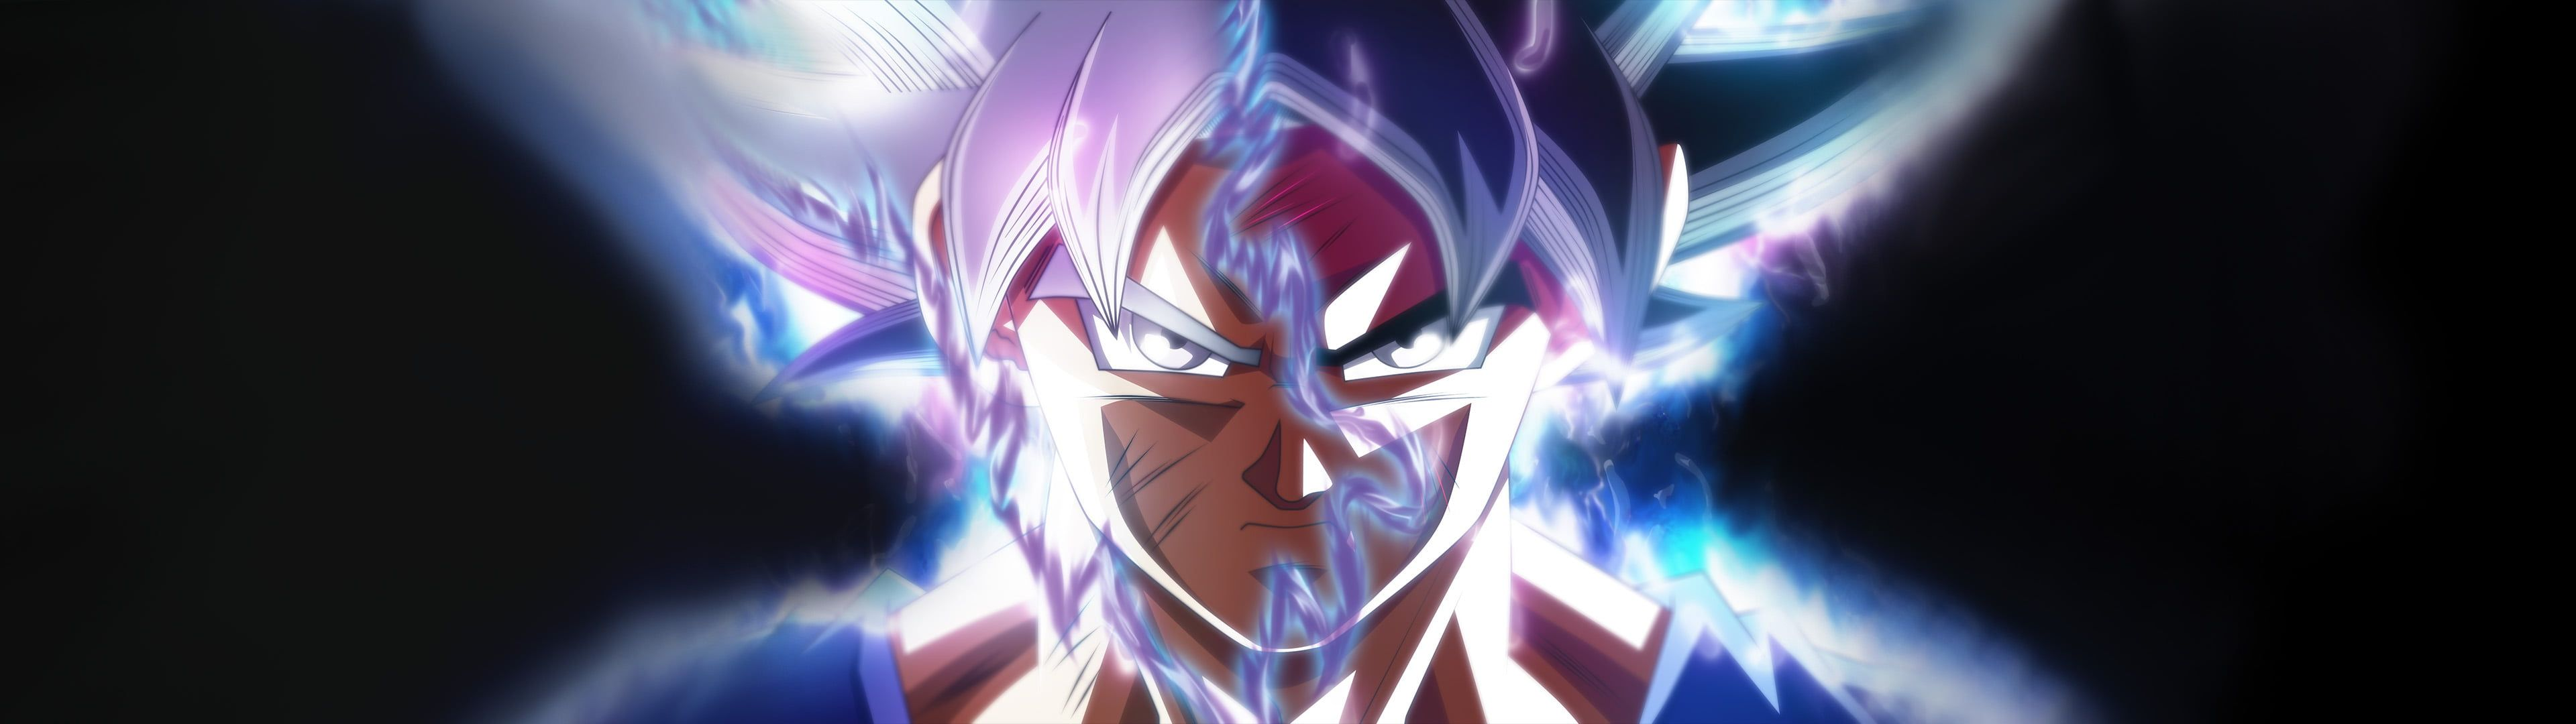 Son Goku Ultra Instinct Dragon Ball Son Goku Ultra Instict